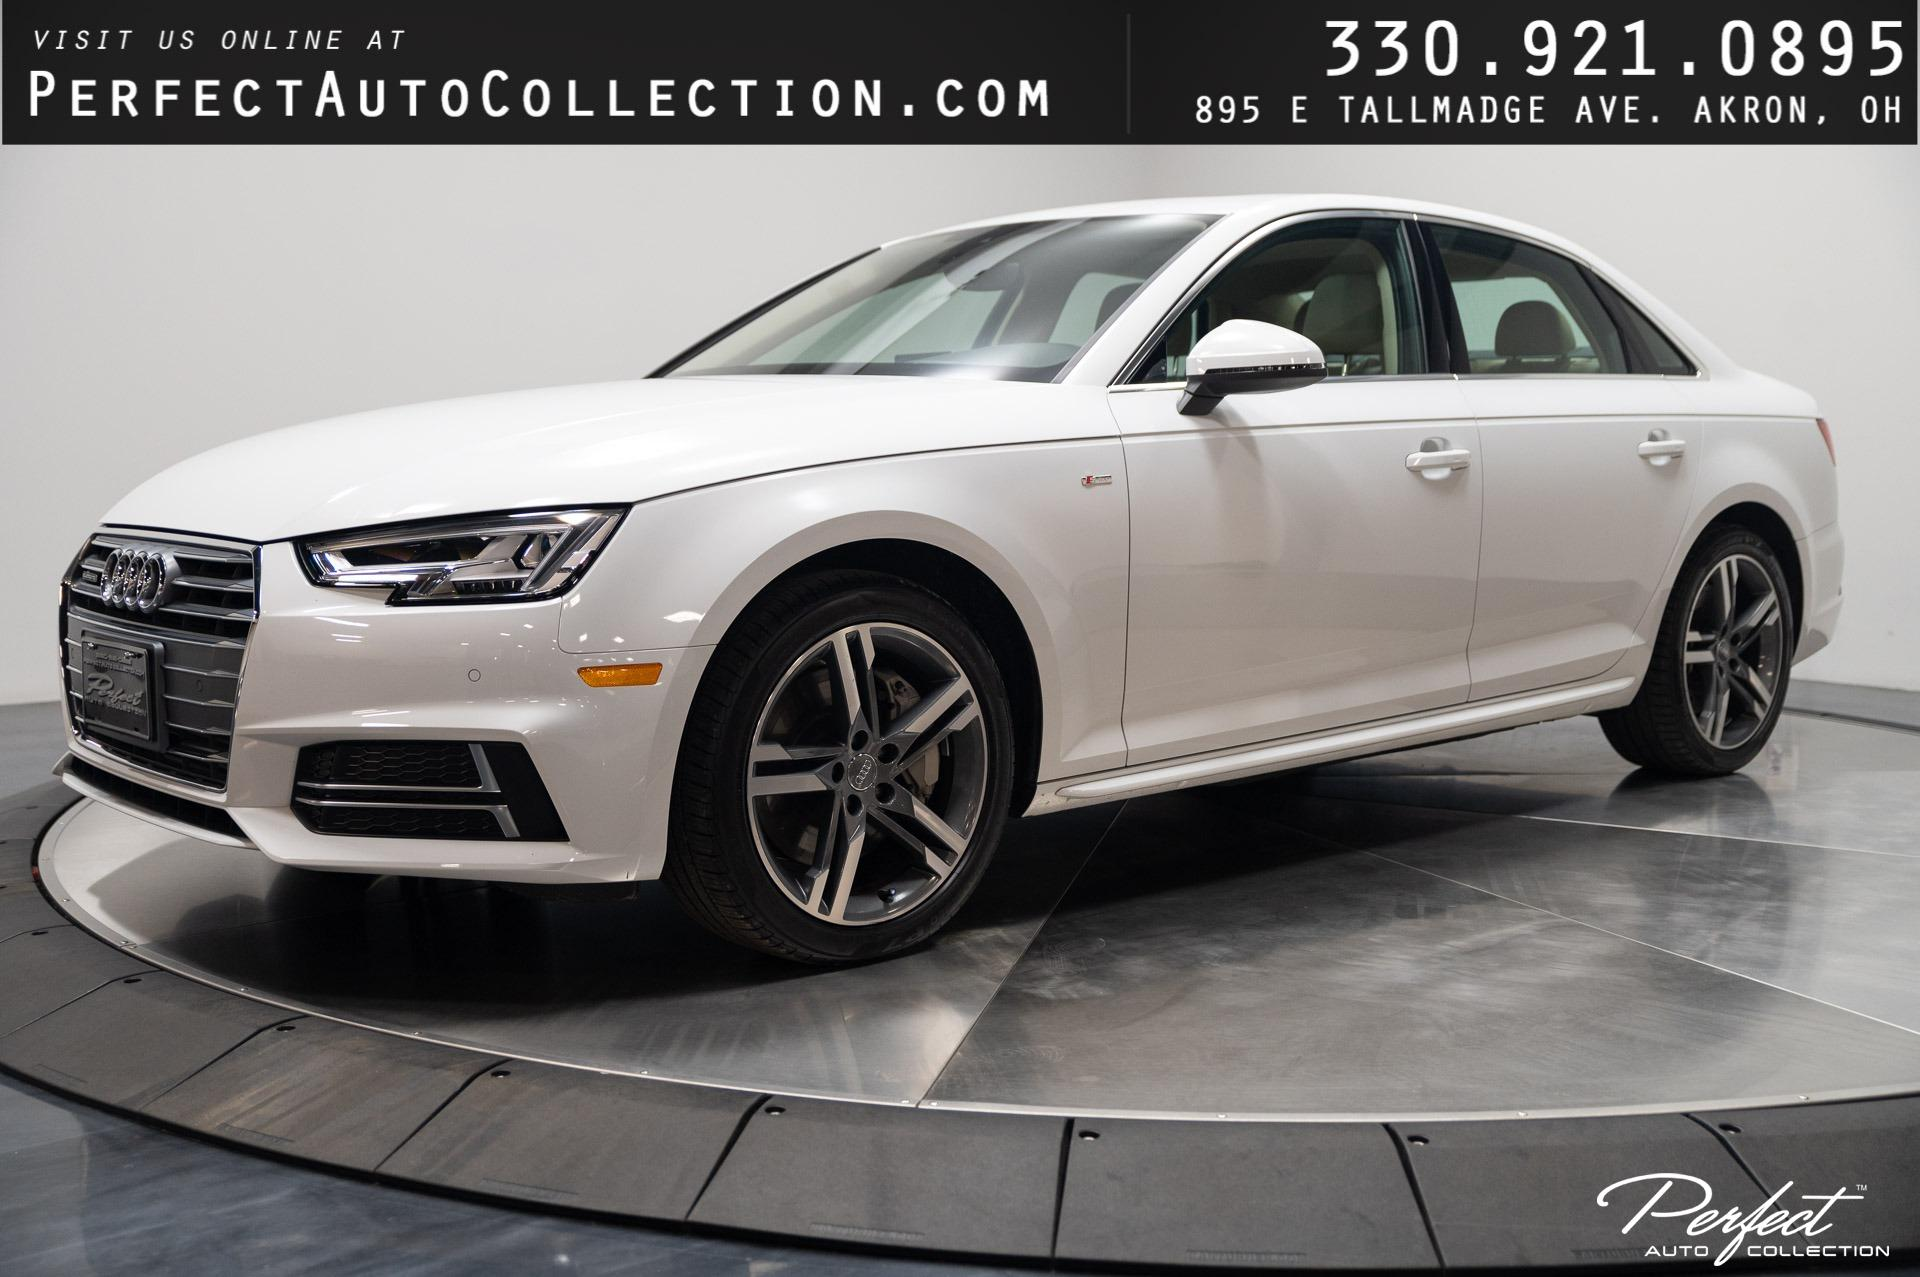 Used 2018 Audi A4 2.0T quattro Premium Plus for sale Sold at Perfect Auto Collection in Akron OH 44310 1